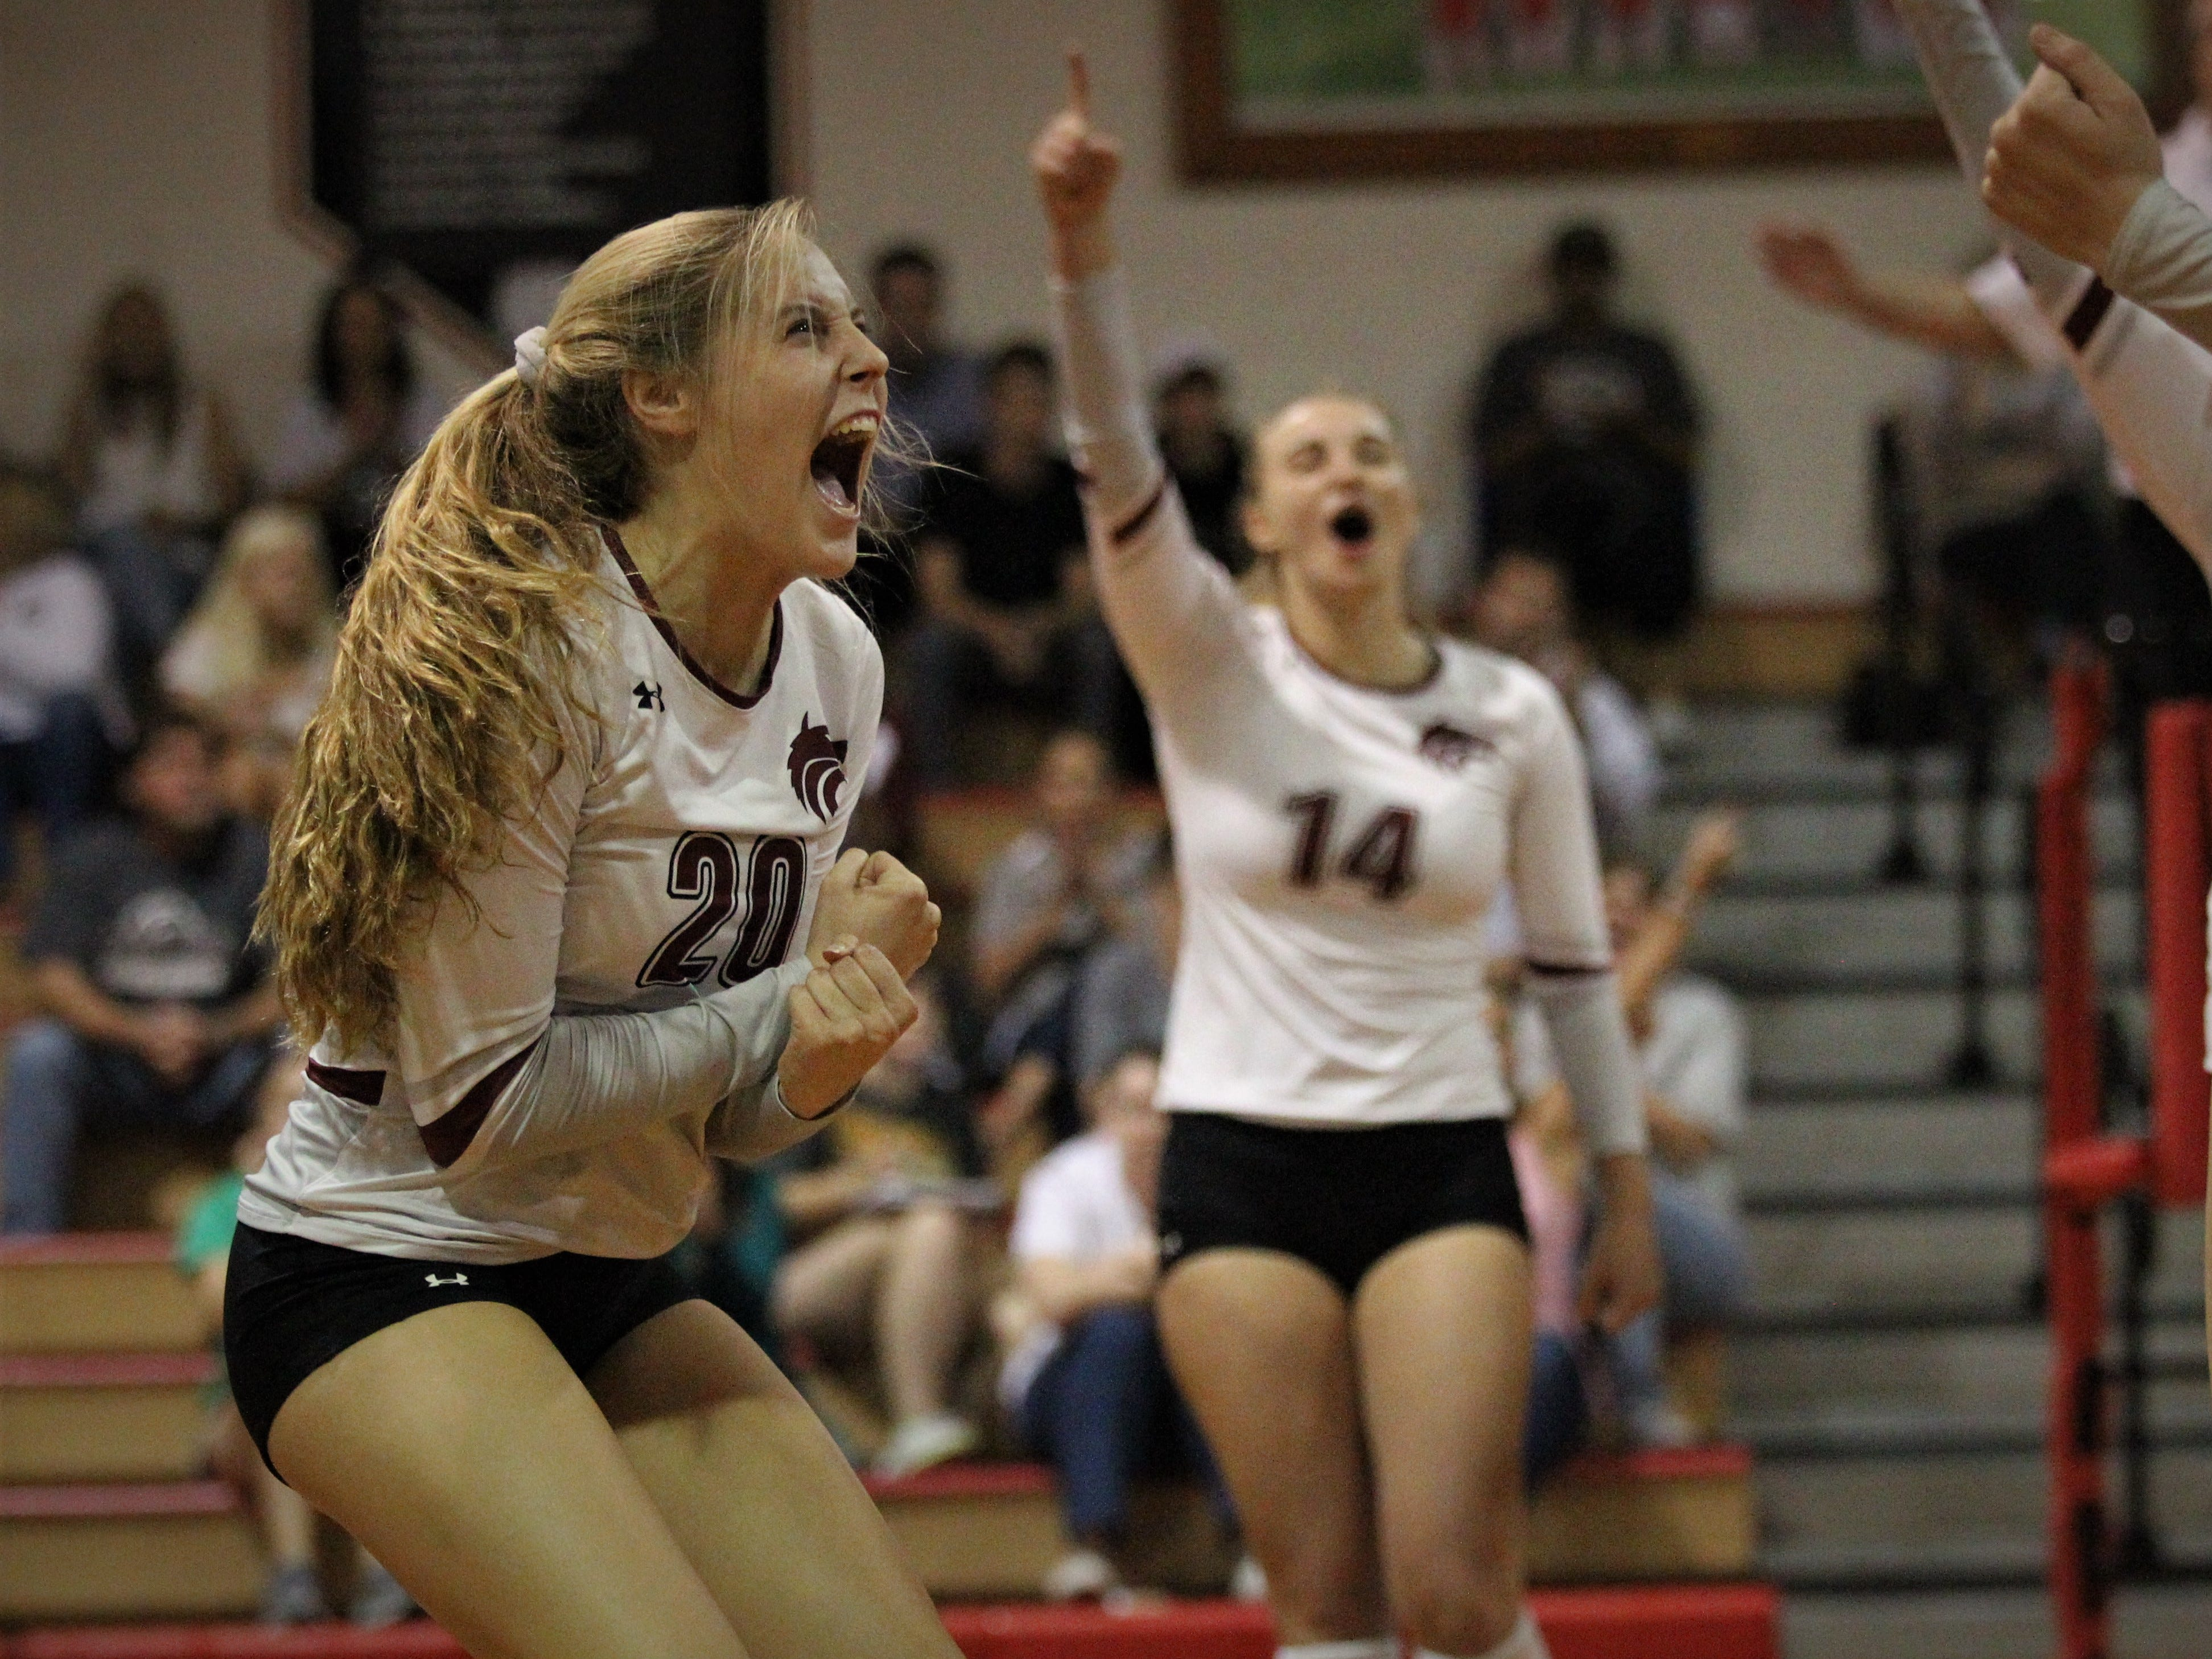 Chiles seniors Kelsey Mead (20) and Aly Freeland (14) react to scoring a point as the Timberwolves beat Lincoln 3-0 in a District 2-8A semifinal on Tuesday at Leon.